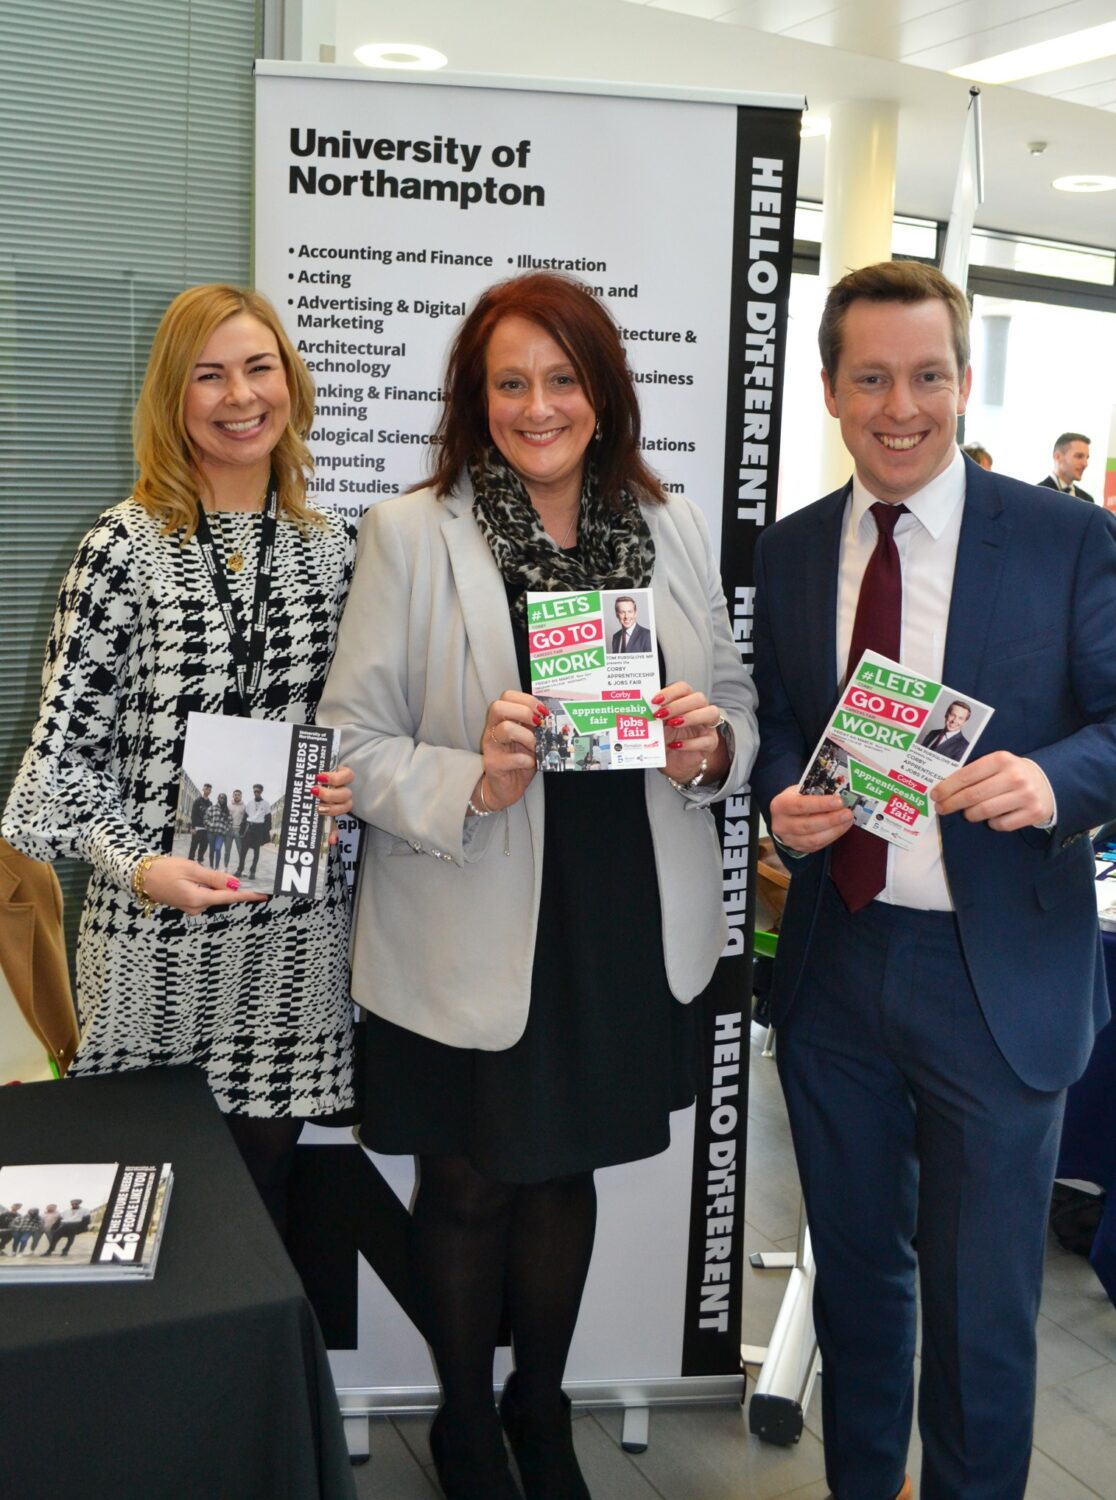 Corby MP with Karen Campbell and rep from Uni of Northampton at Careers Fair